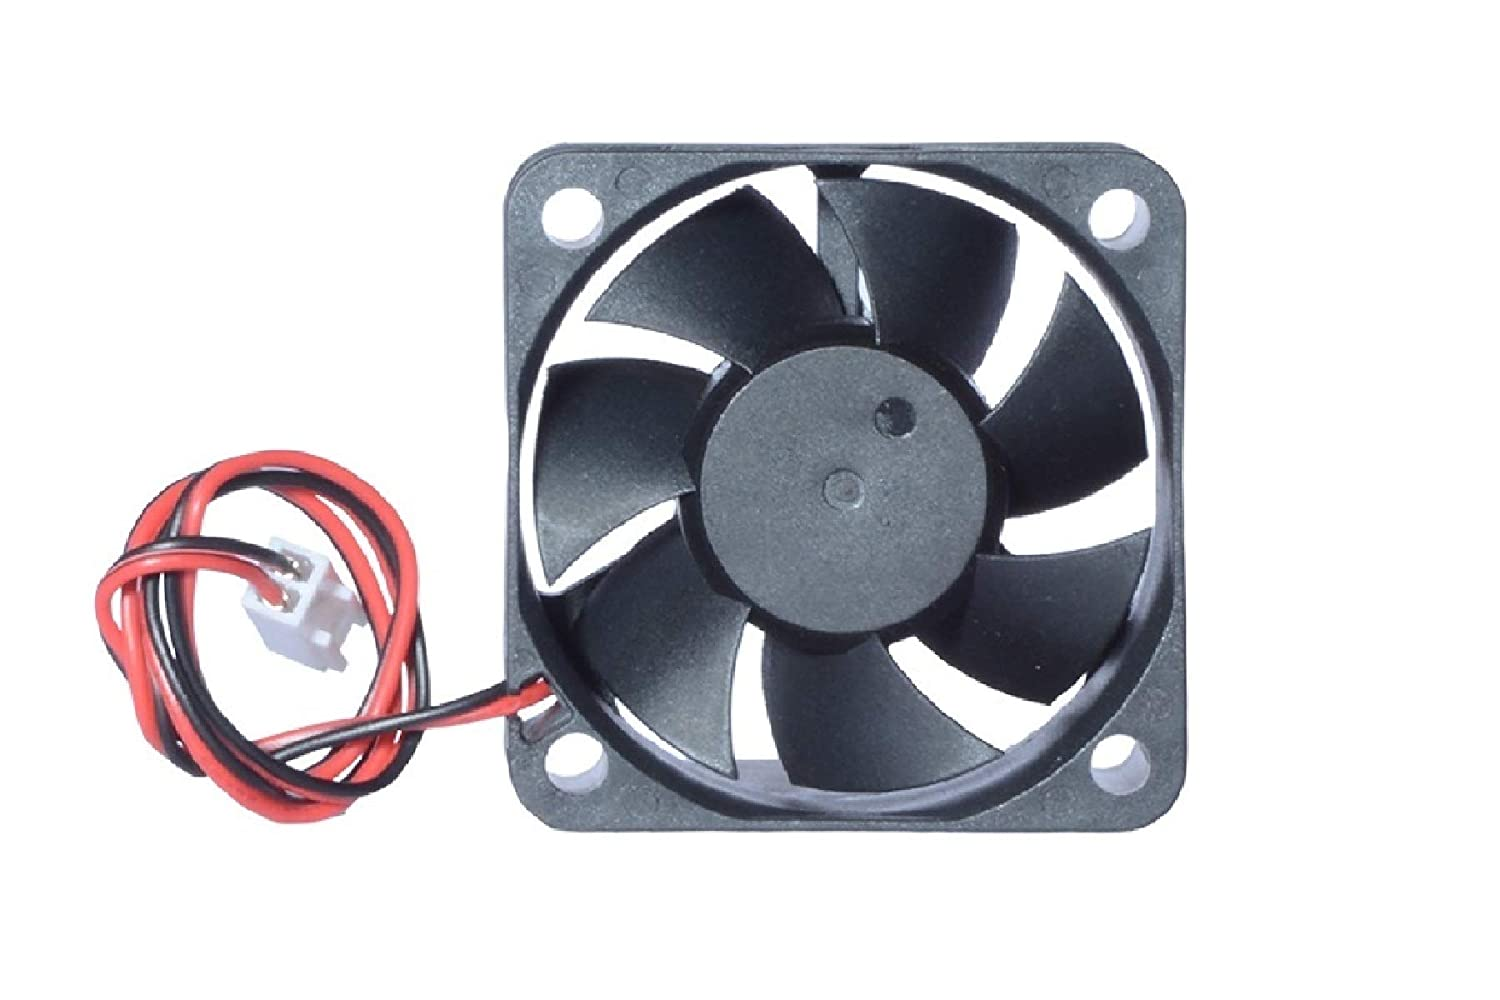 MAA-KU DC5020 Small Axial Case Cooling Fan. SIZE(5x5x2cm), SUPPLY VOLTAGE :  12VDC: Amazon.in: Computers & Accessories